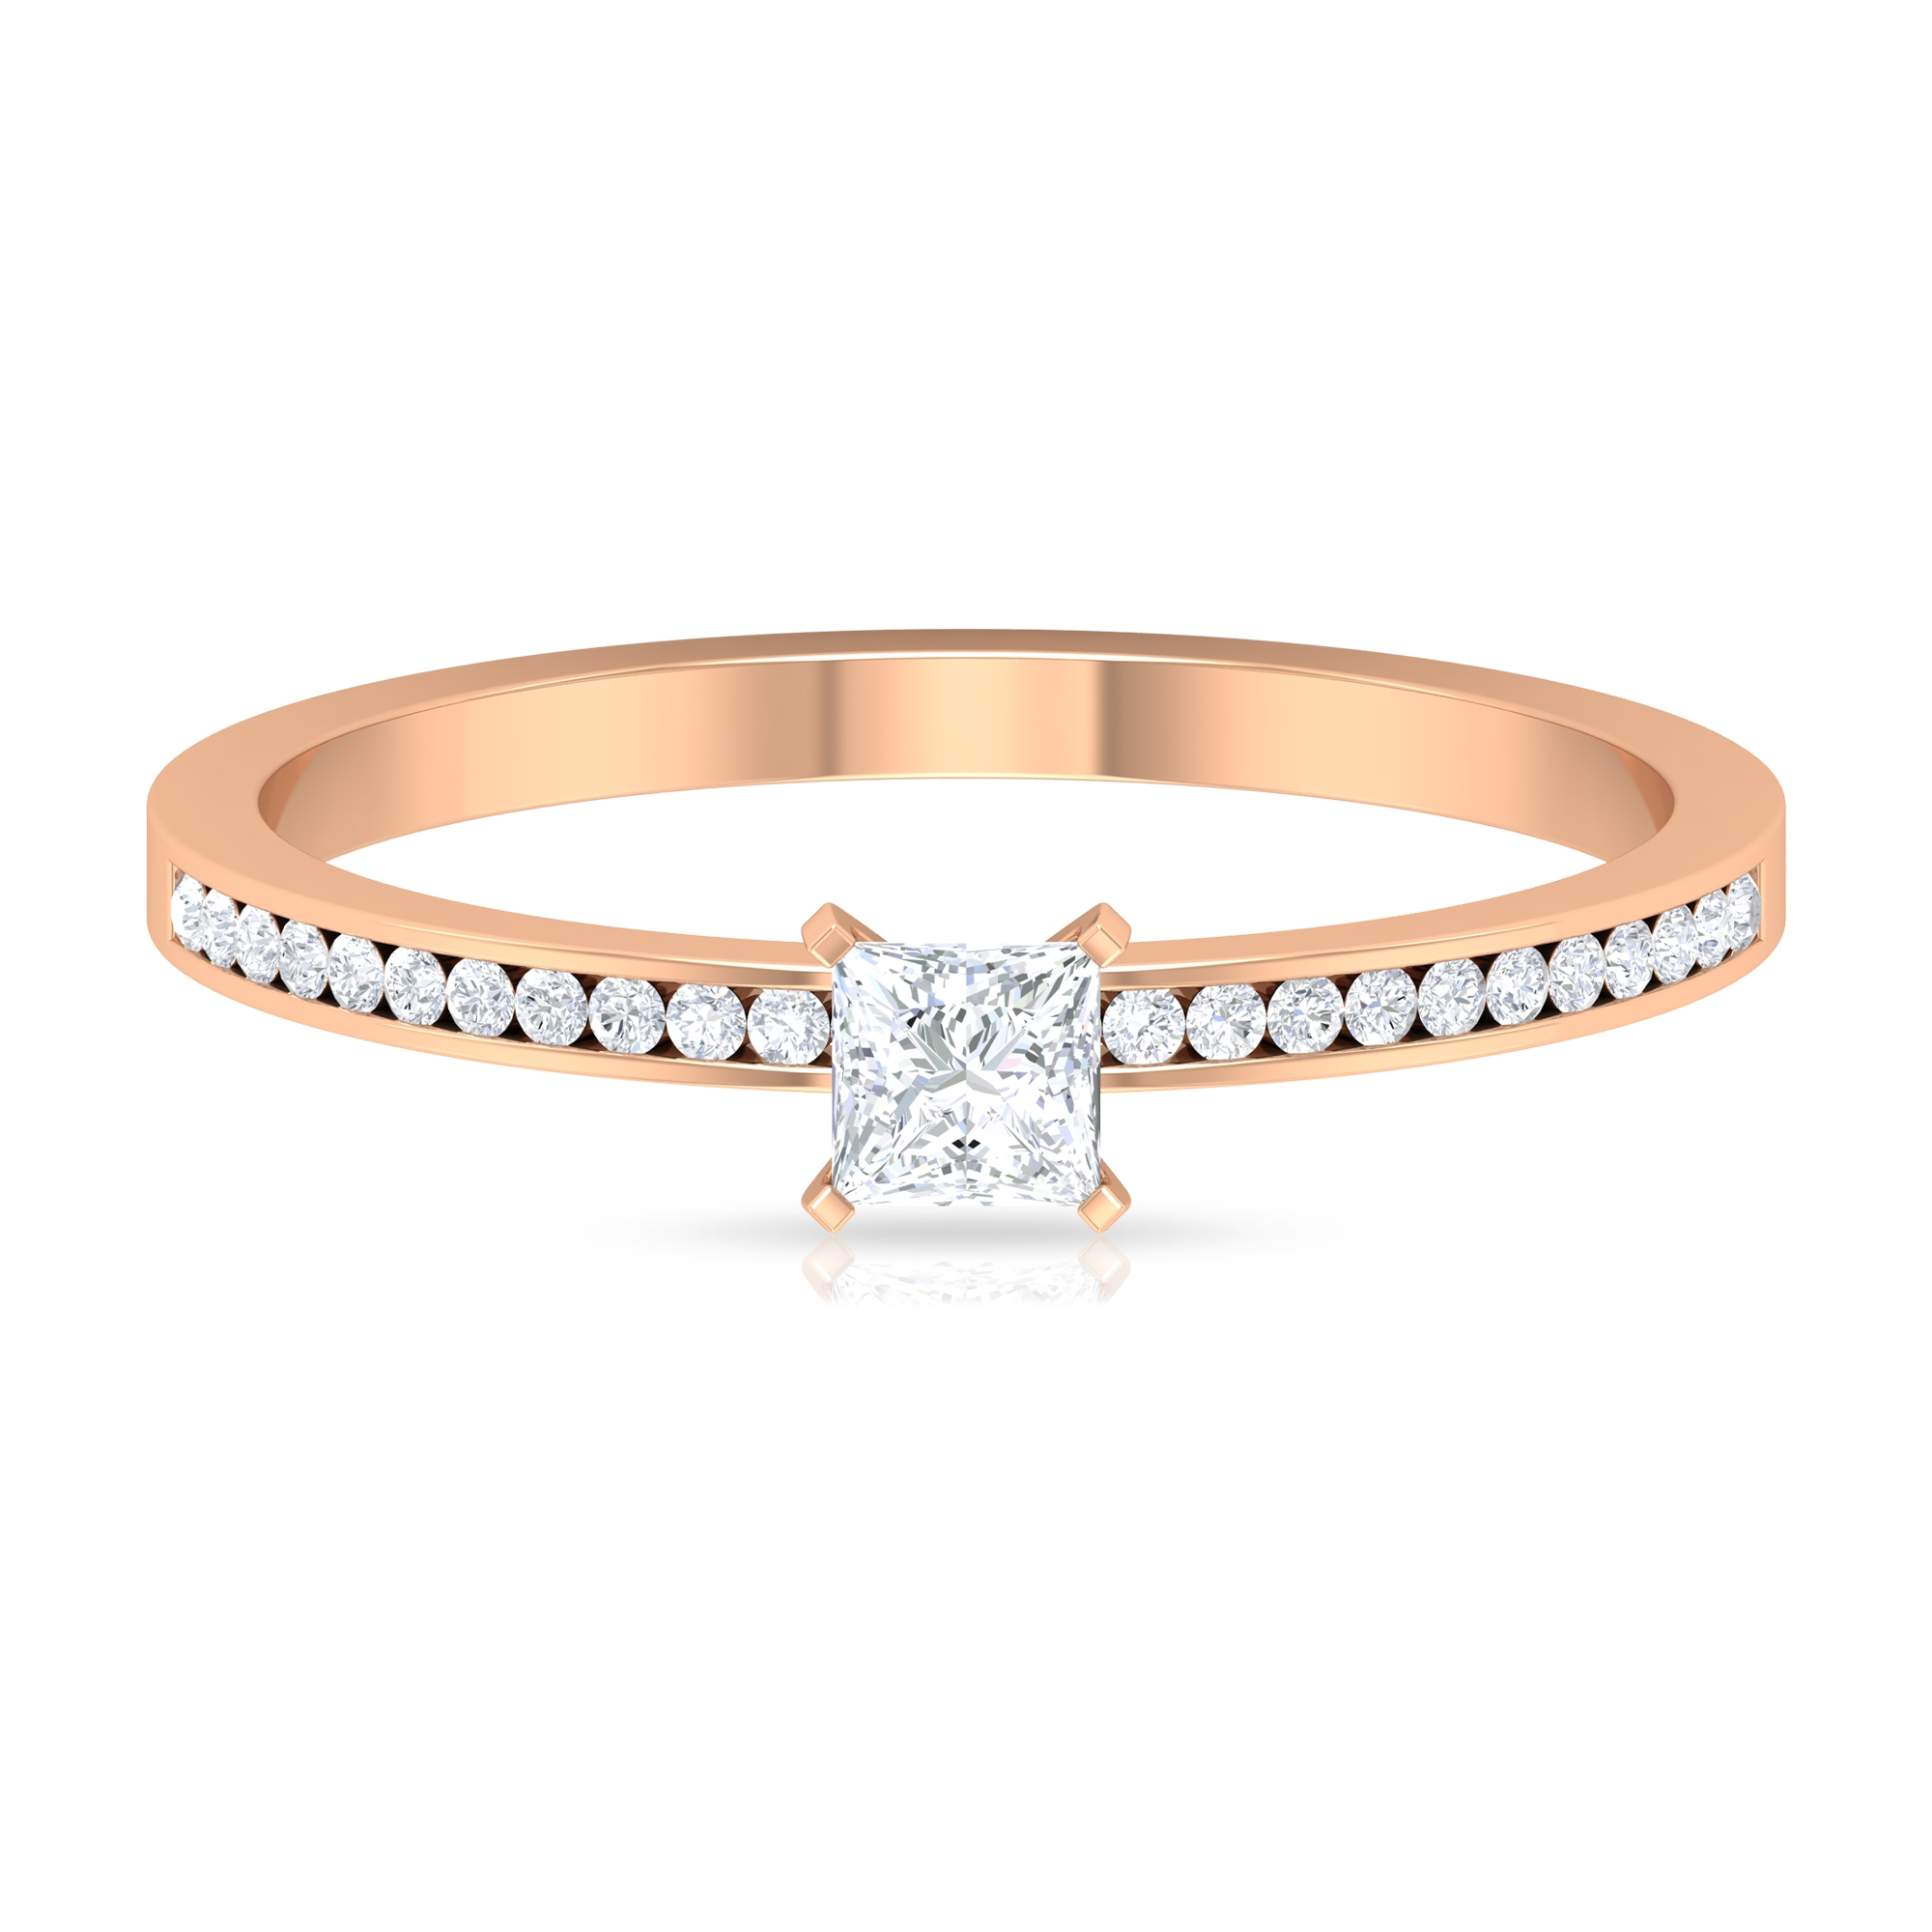 3.30 MM Princess Cut Solitaire Diamond Ring in French Setting with Side Stones